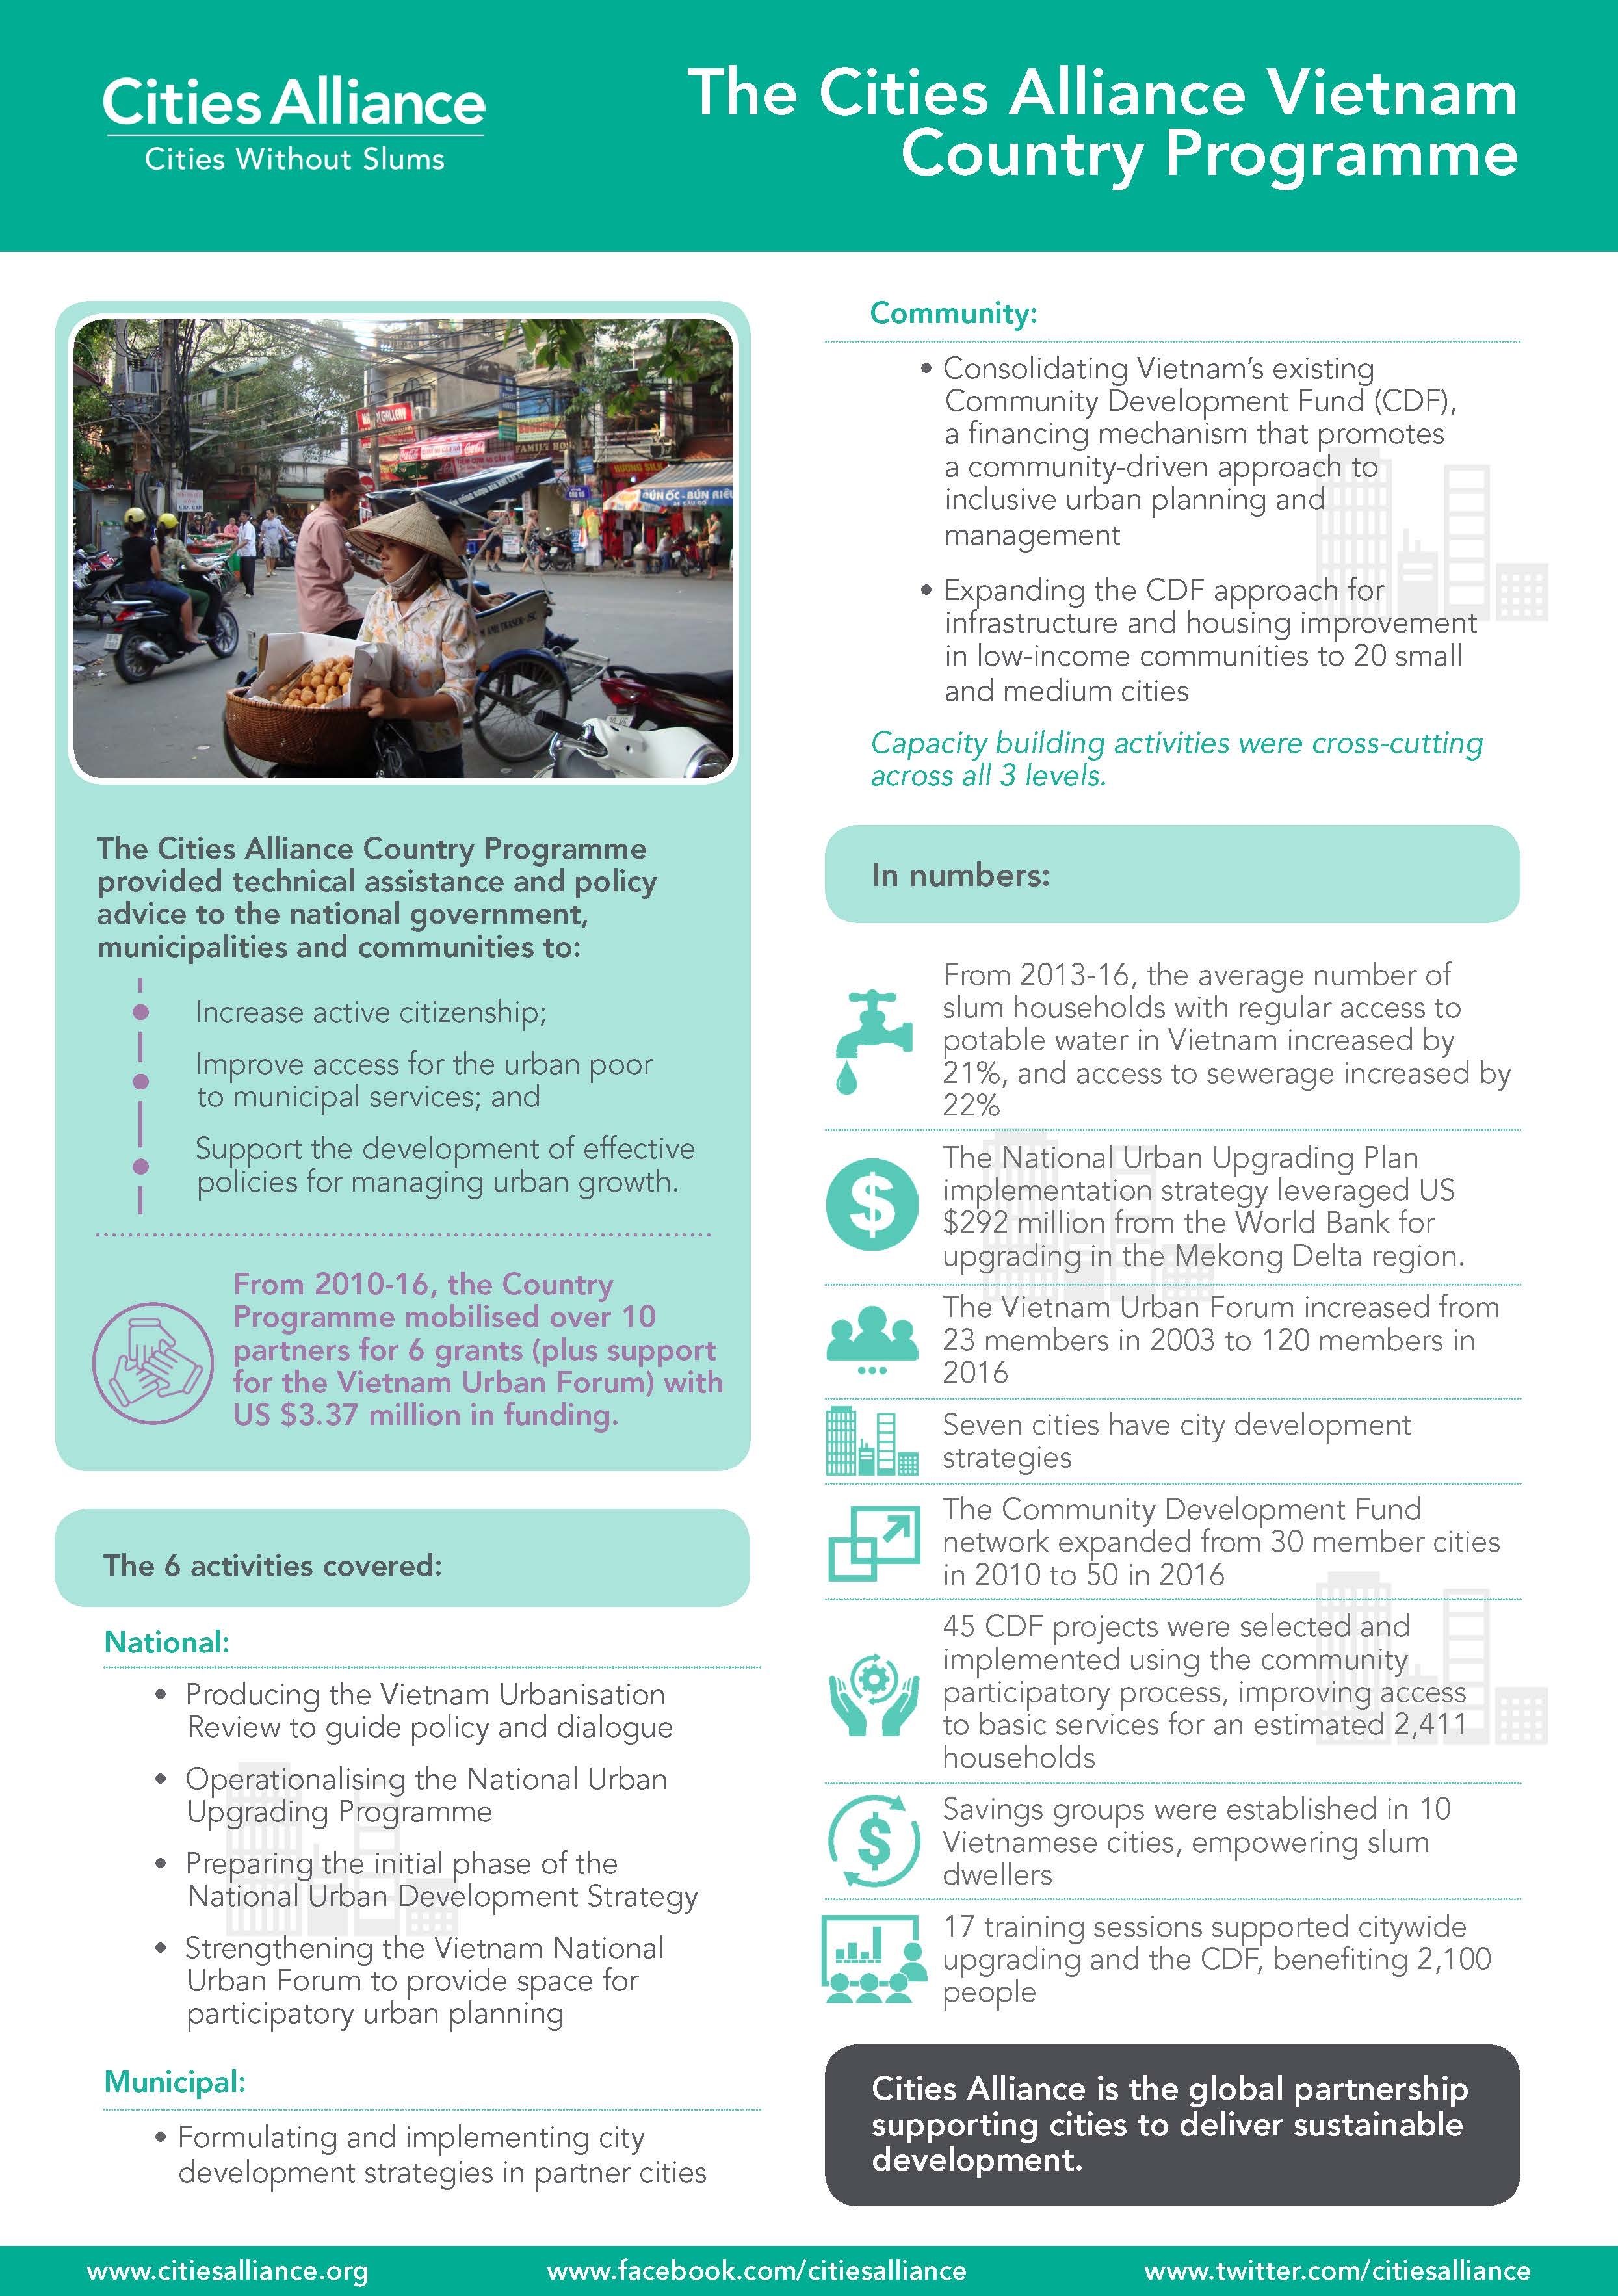 The Cities AllianceVietnam Country Programme